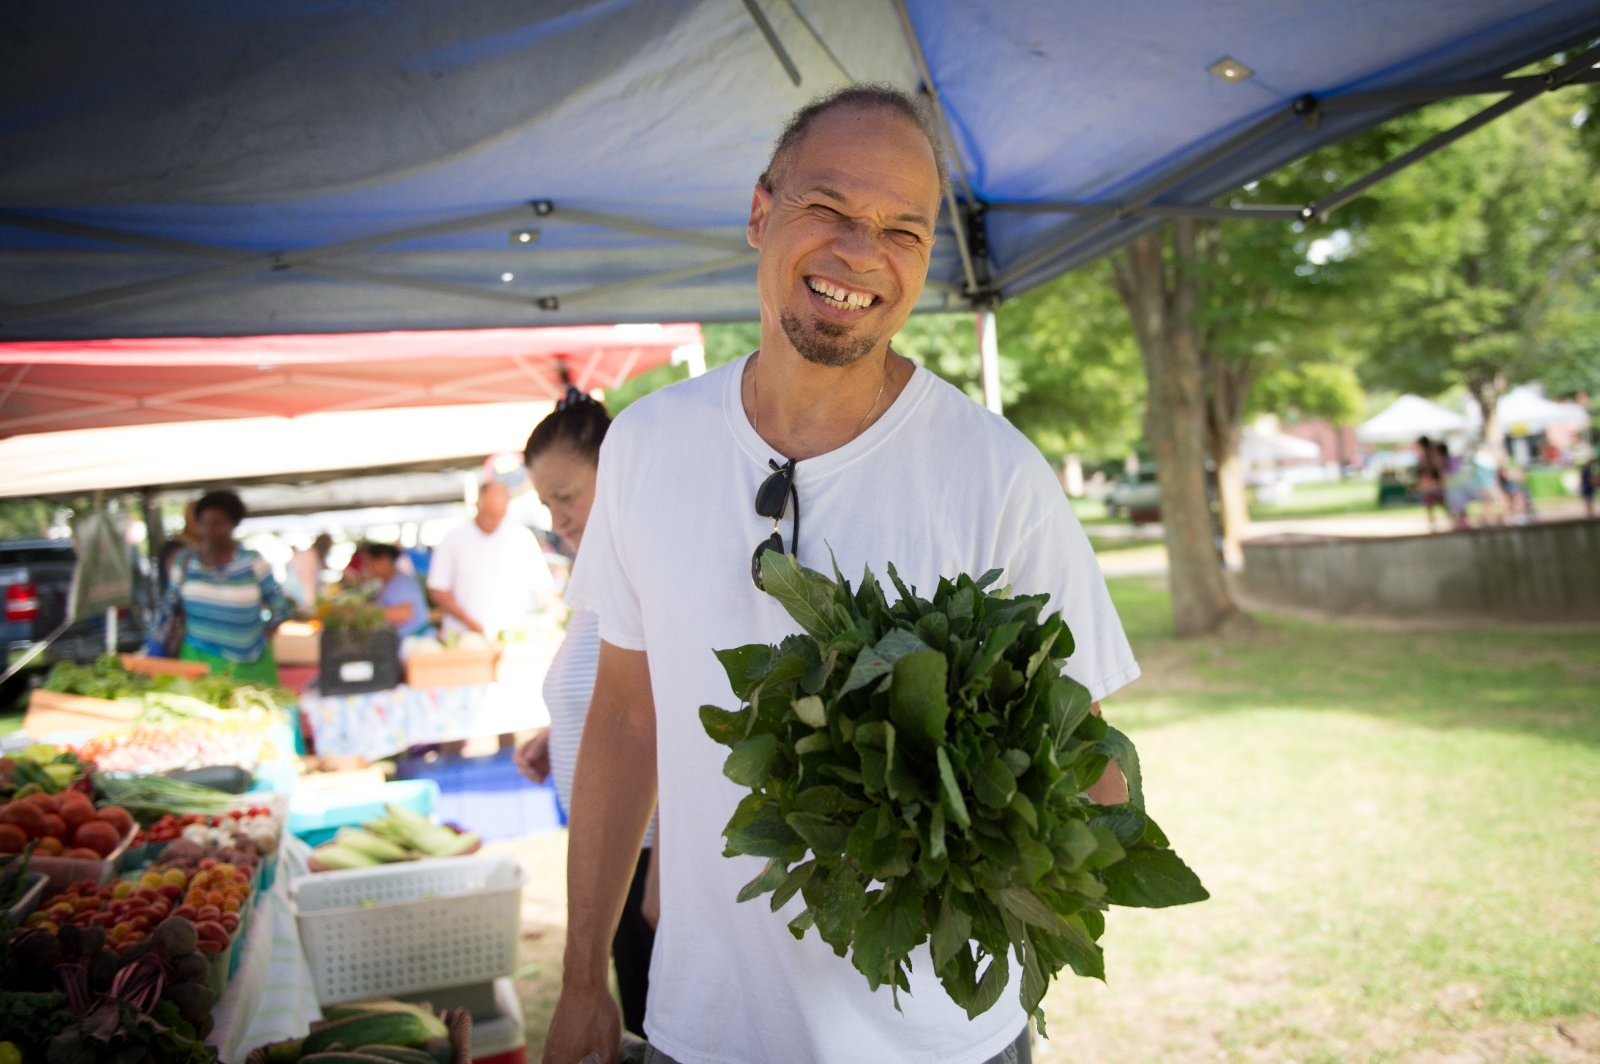 A man shops for greens at a farmers' market.